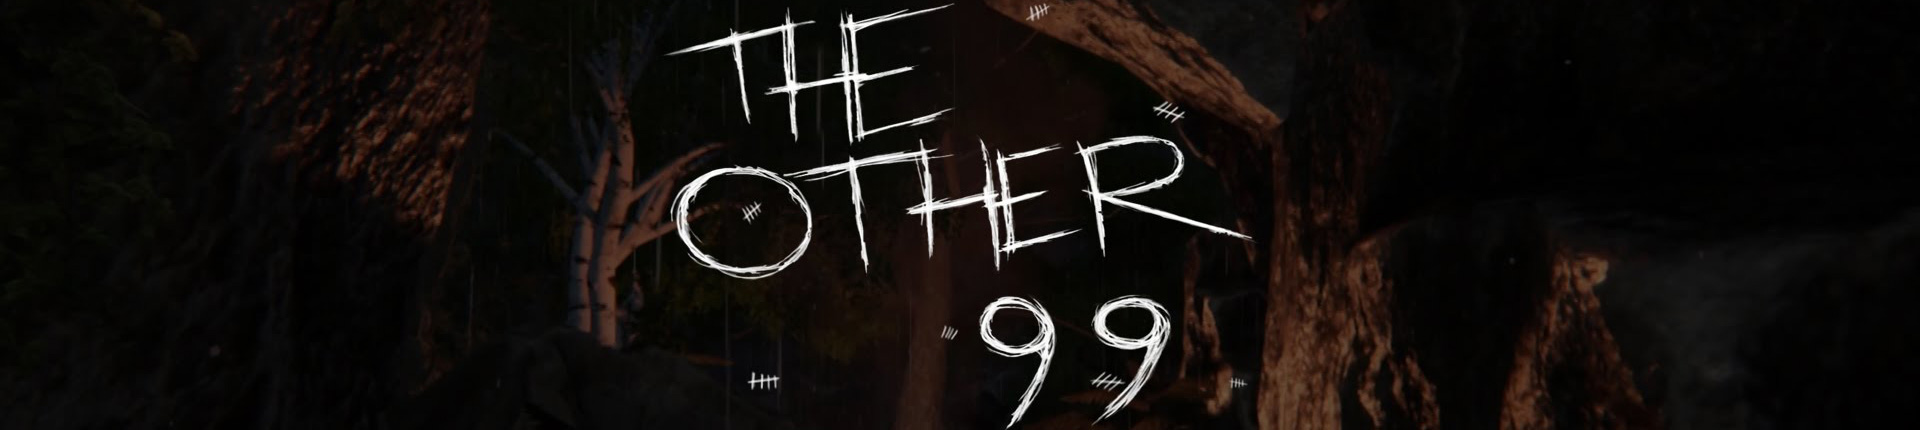 theother99-430